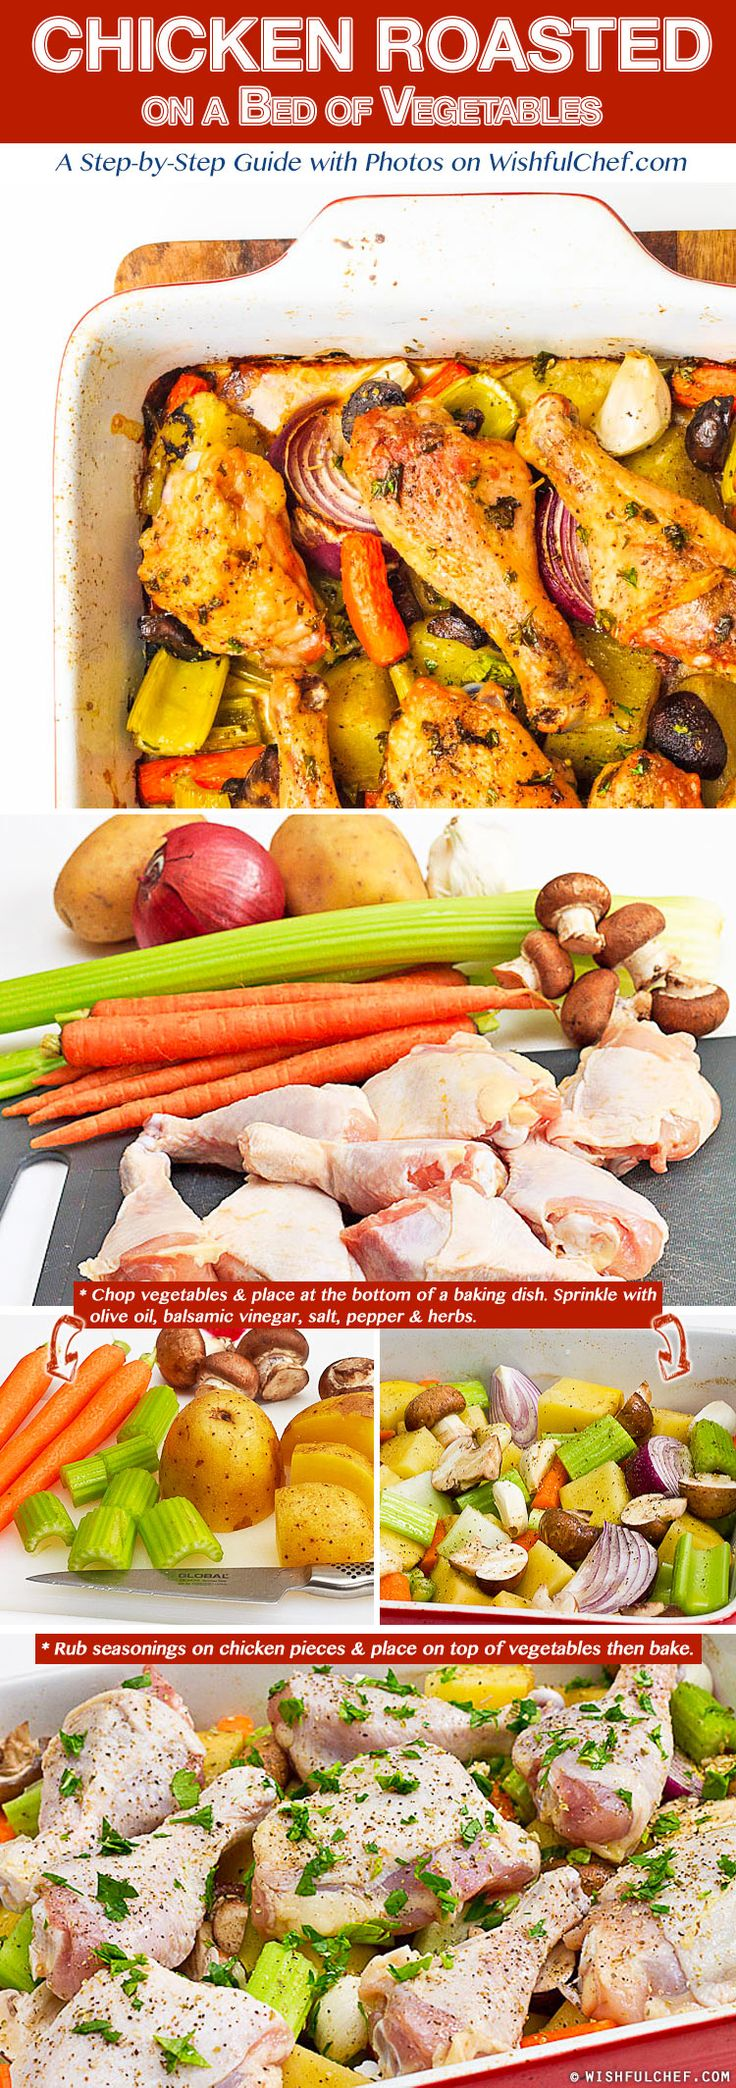 Chicken Roasted on a Bed of Vegetables - The Perfect One Pot Meal // wishfulchef.com